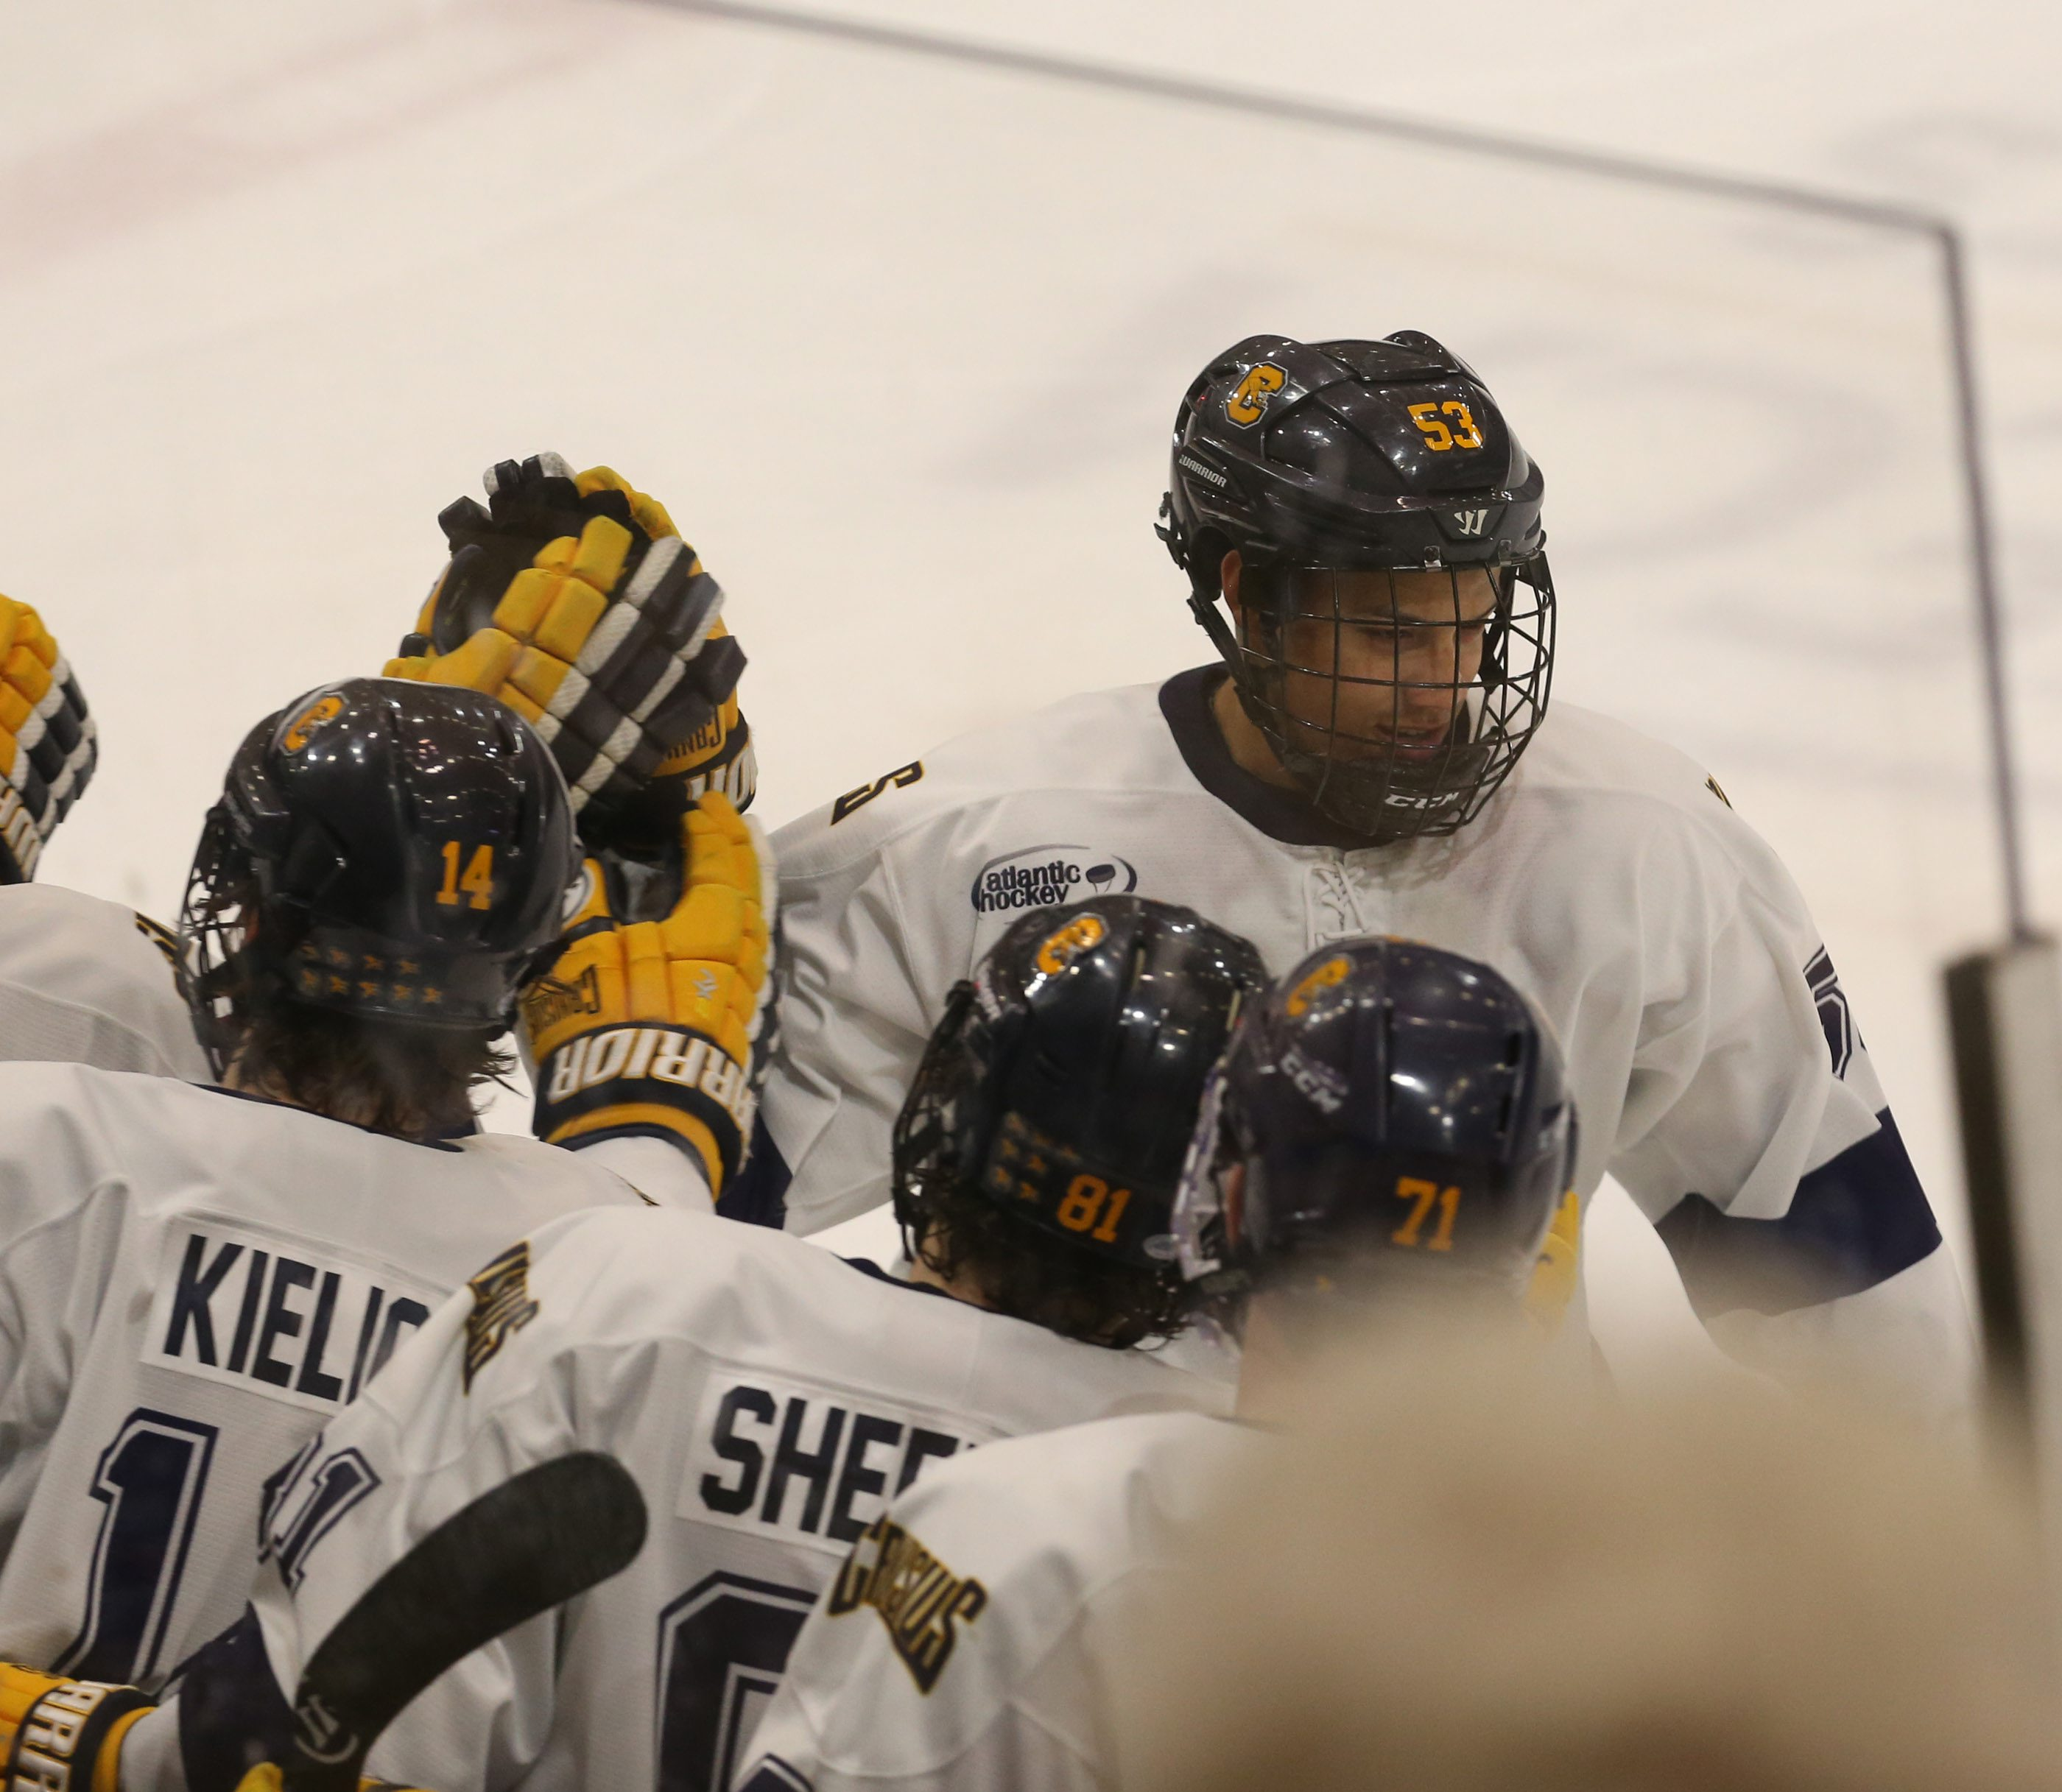 Cameron Heath scored the only goal for Canisius on Saturday. (James P. McCoy/ Buffalo News File Photo)